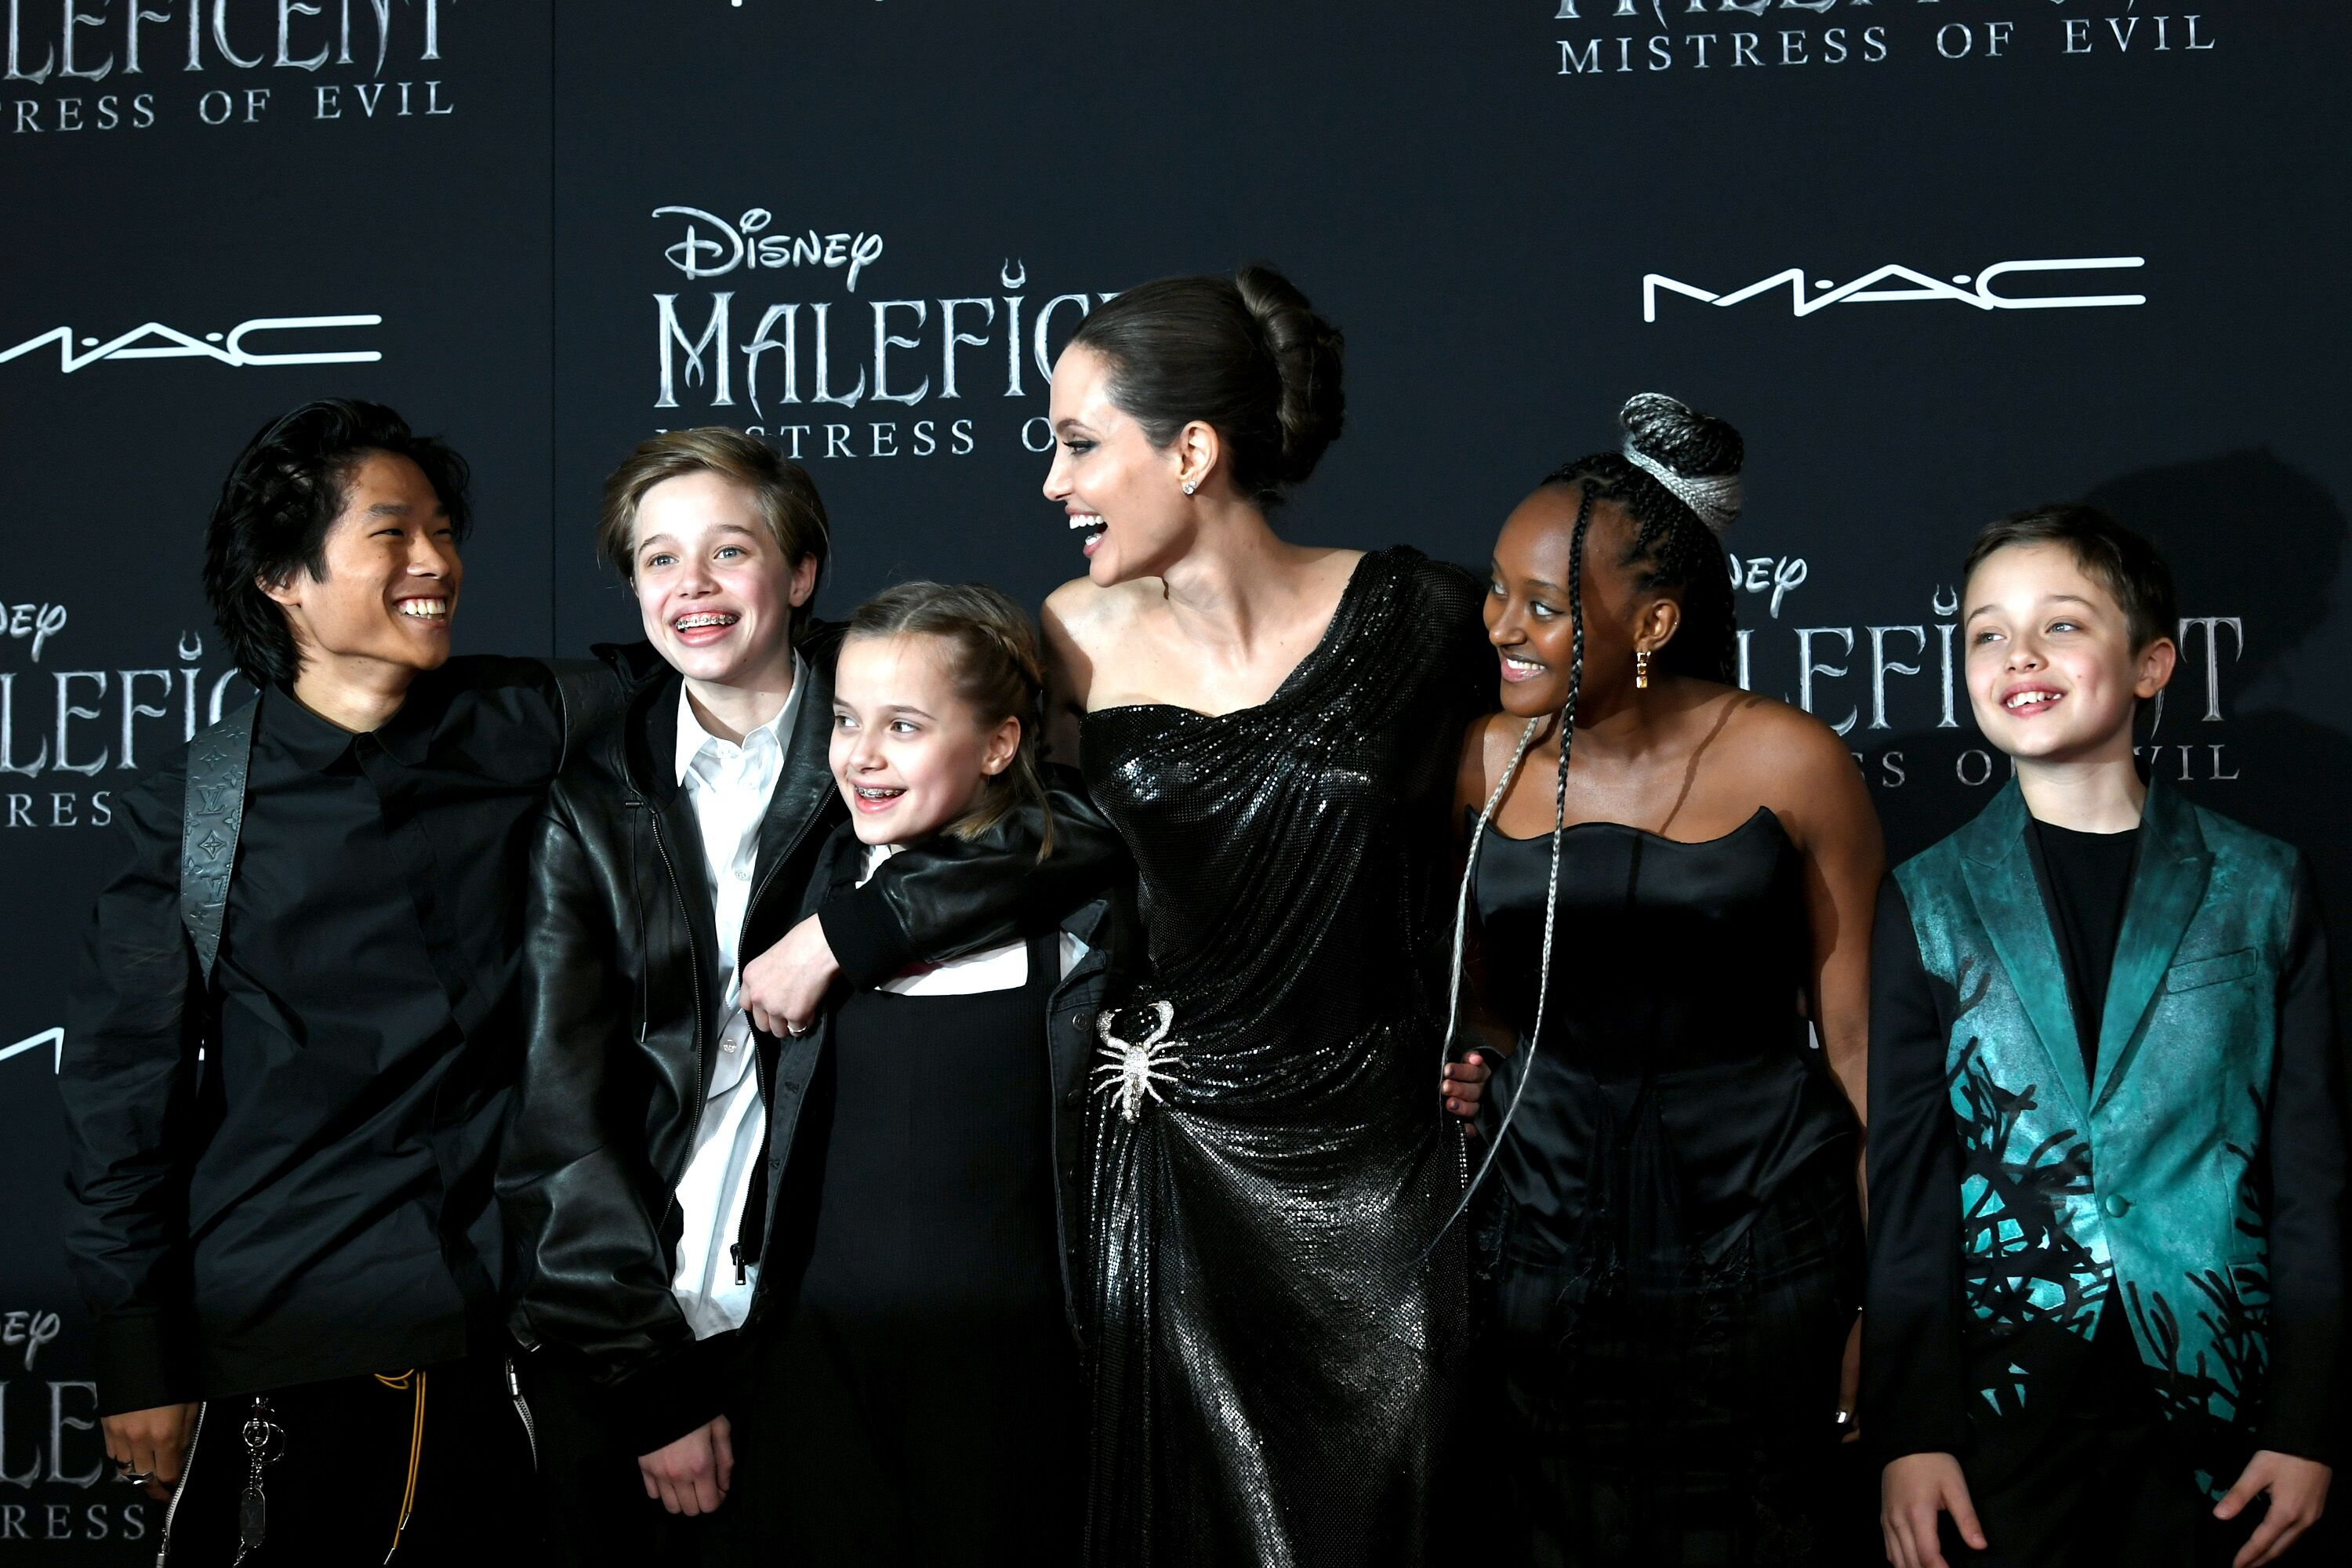 "L-R) Pax Thien Jolie-Pitt, Shiloh Nouvel Jolie-Pitt, Vivienne Marcheline Jolie-Pitt, Angelina Jolie, Zahara Narley Jolie-Pitt und Knox Leon Jolie-Pitt bei der Premiere von Disneys ""Maleficent: Mistress Of Evil"" im El Capitan Theatre am 30. September 2019 in Los Angeles, Kalifornien 